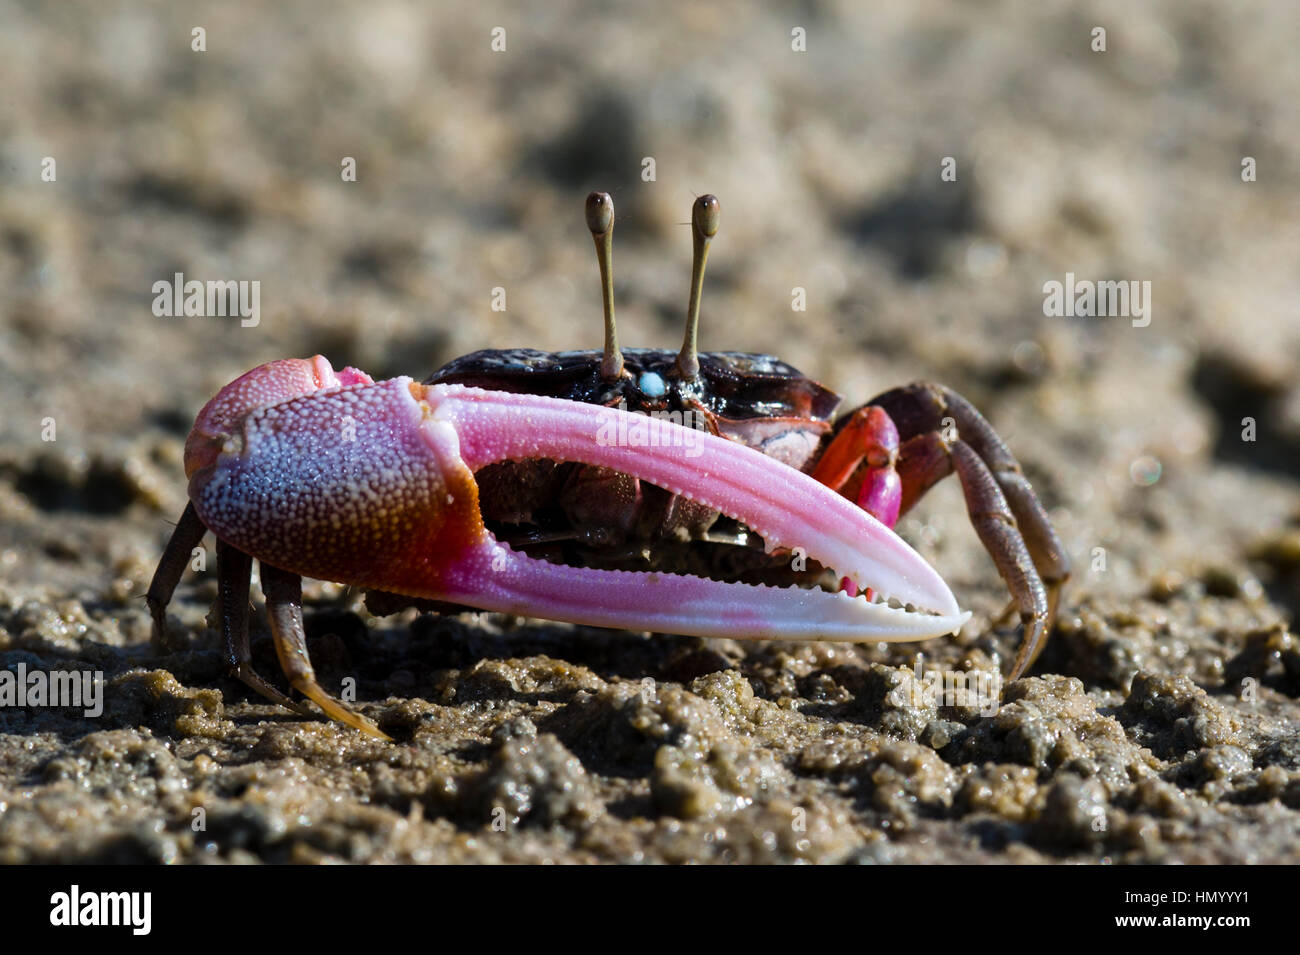 The bright pink claw of a male Fiddler Crab used for defense on a tidal flat. - Stock Image